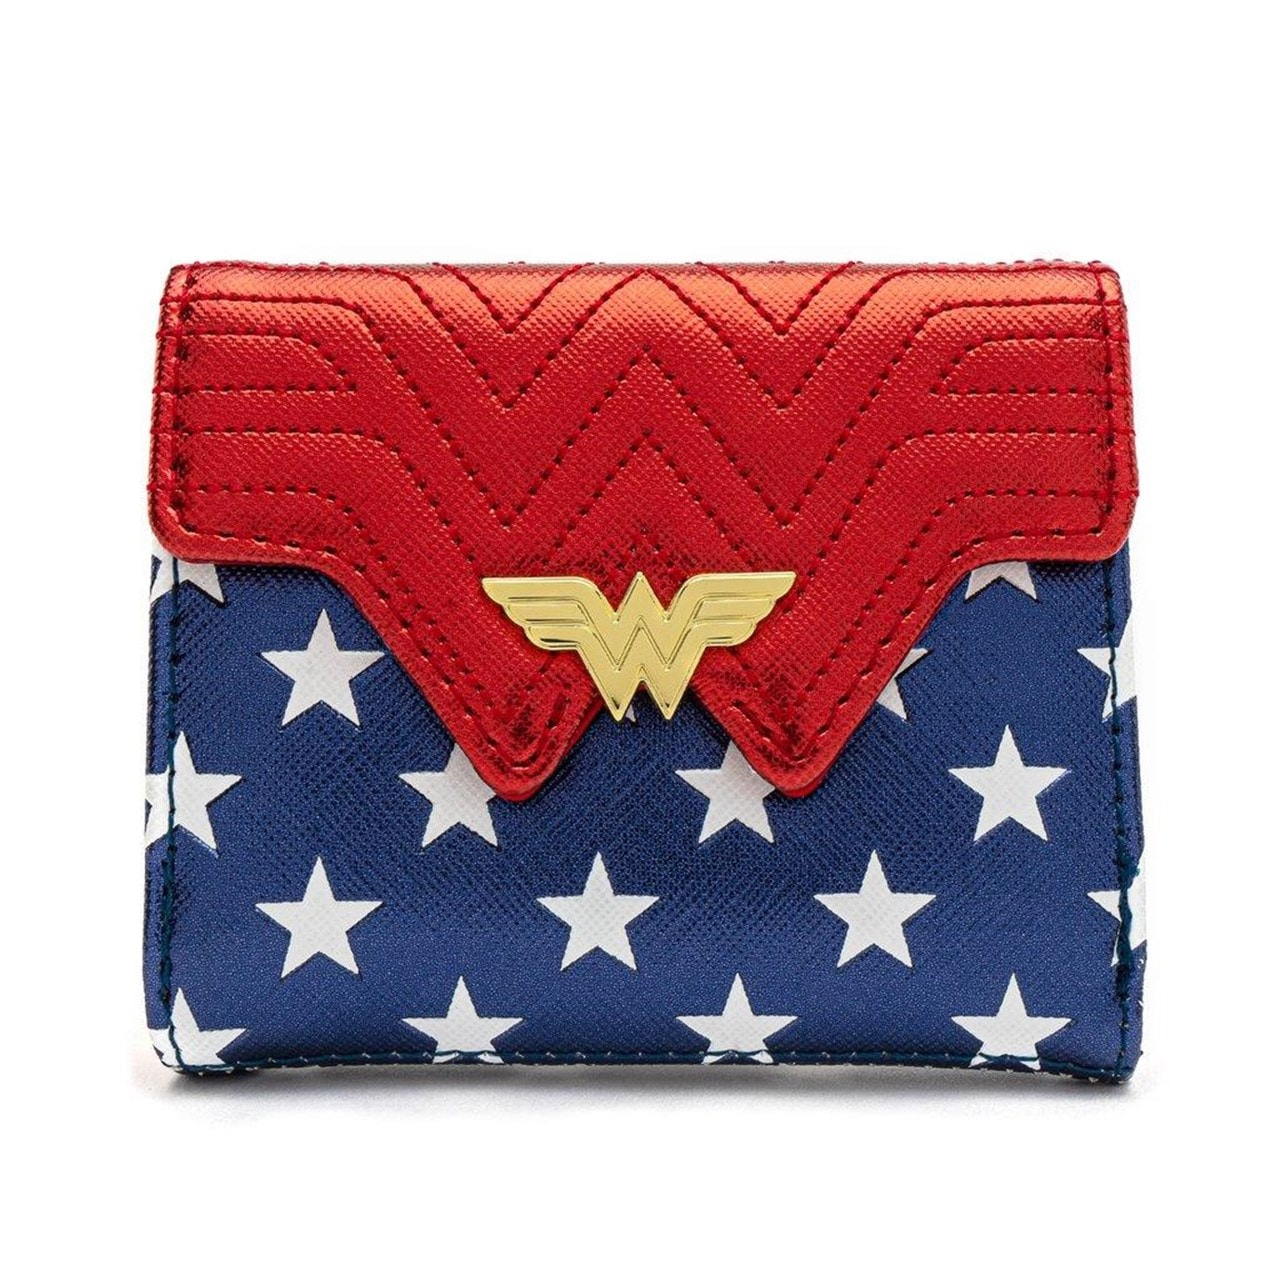 Loungefly X DC Comics Wonder Woman Red White And Blue Flap Wallet - 1